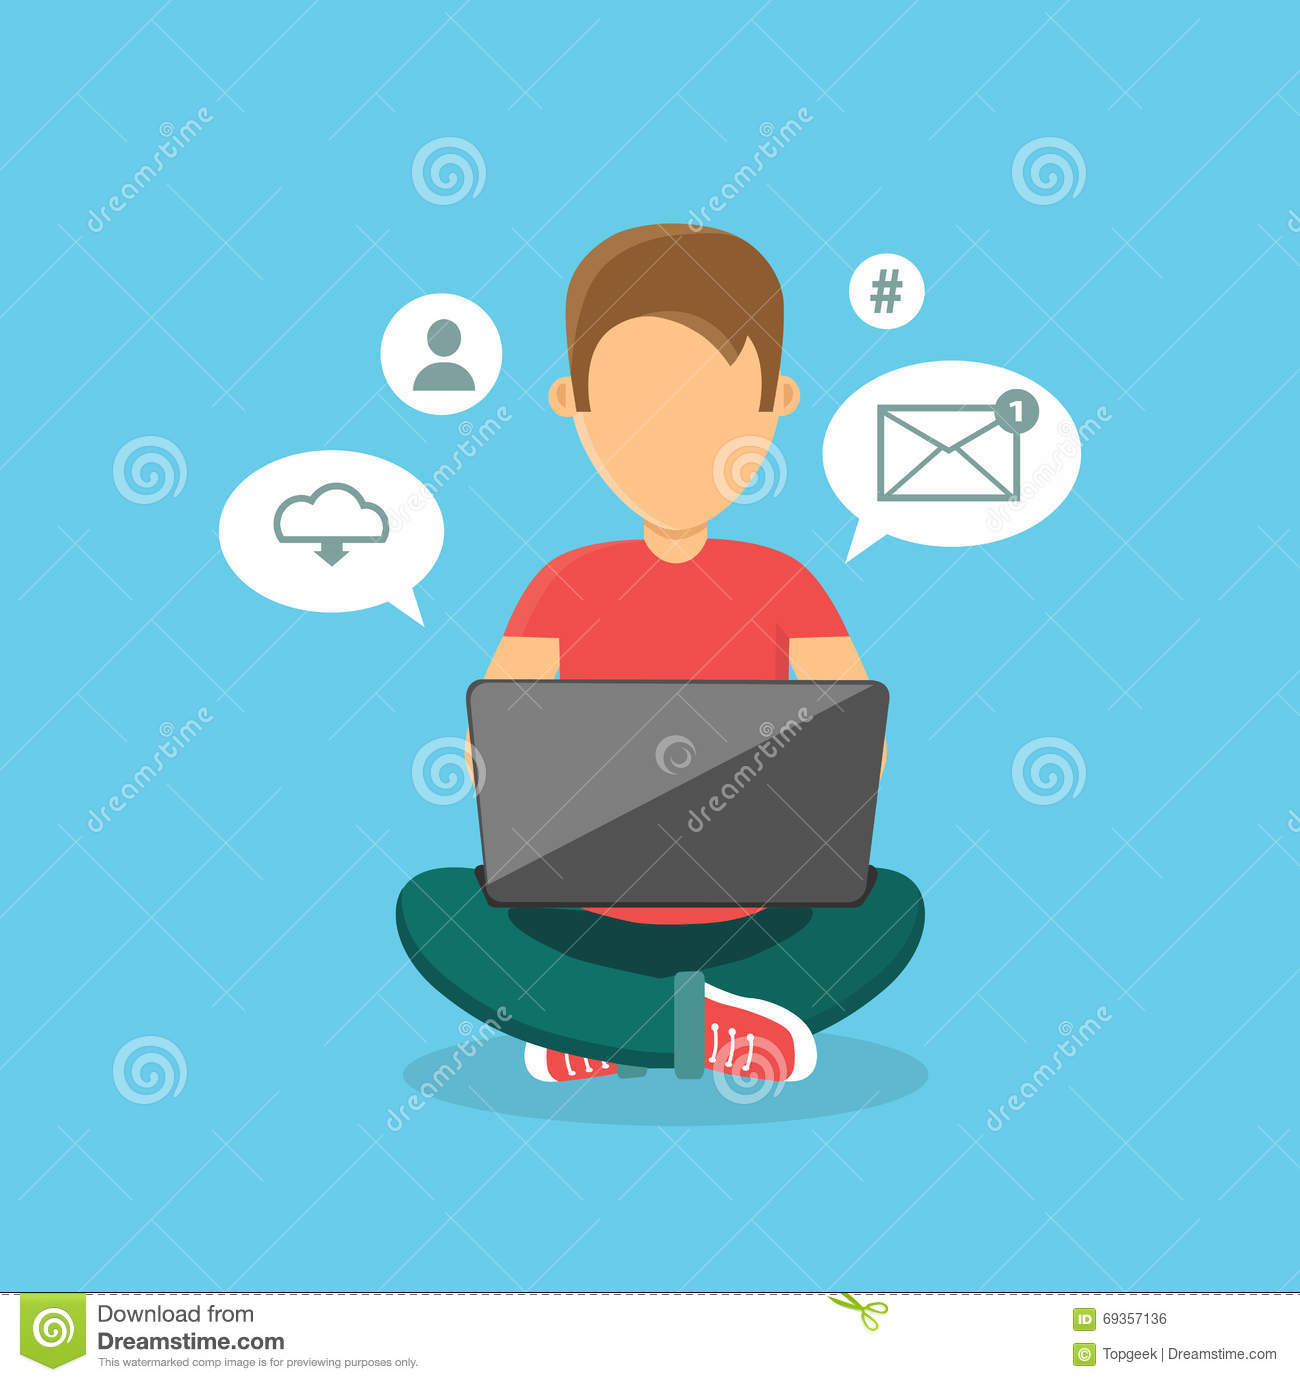 computer-user-man-isolated-icon-office-person-human-web-vector-illustration-69357136.jpg